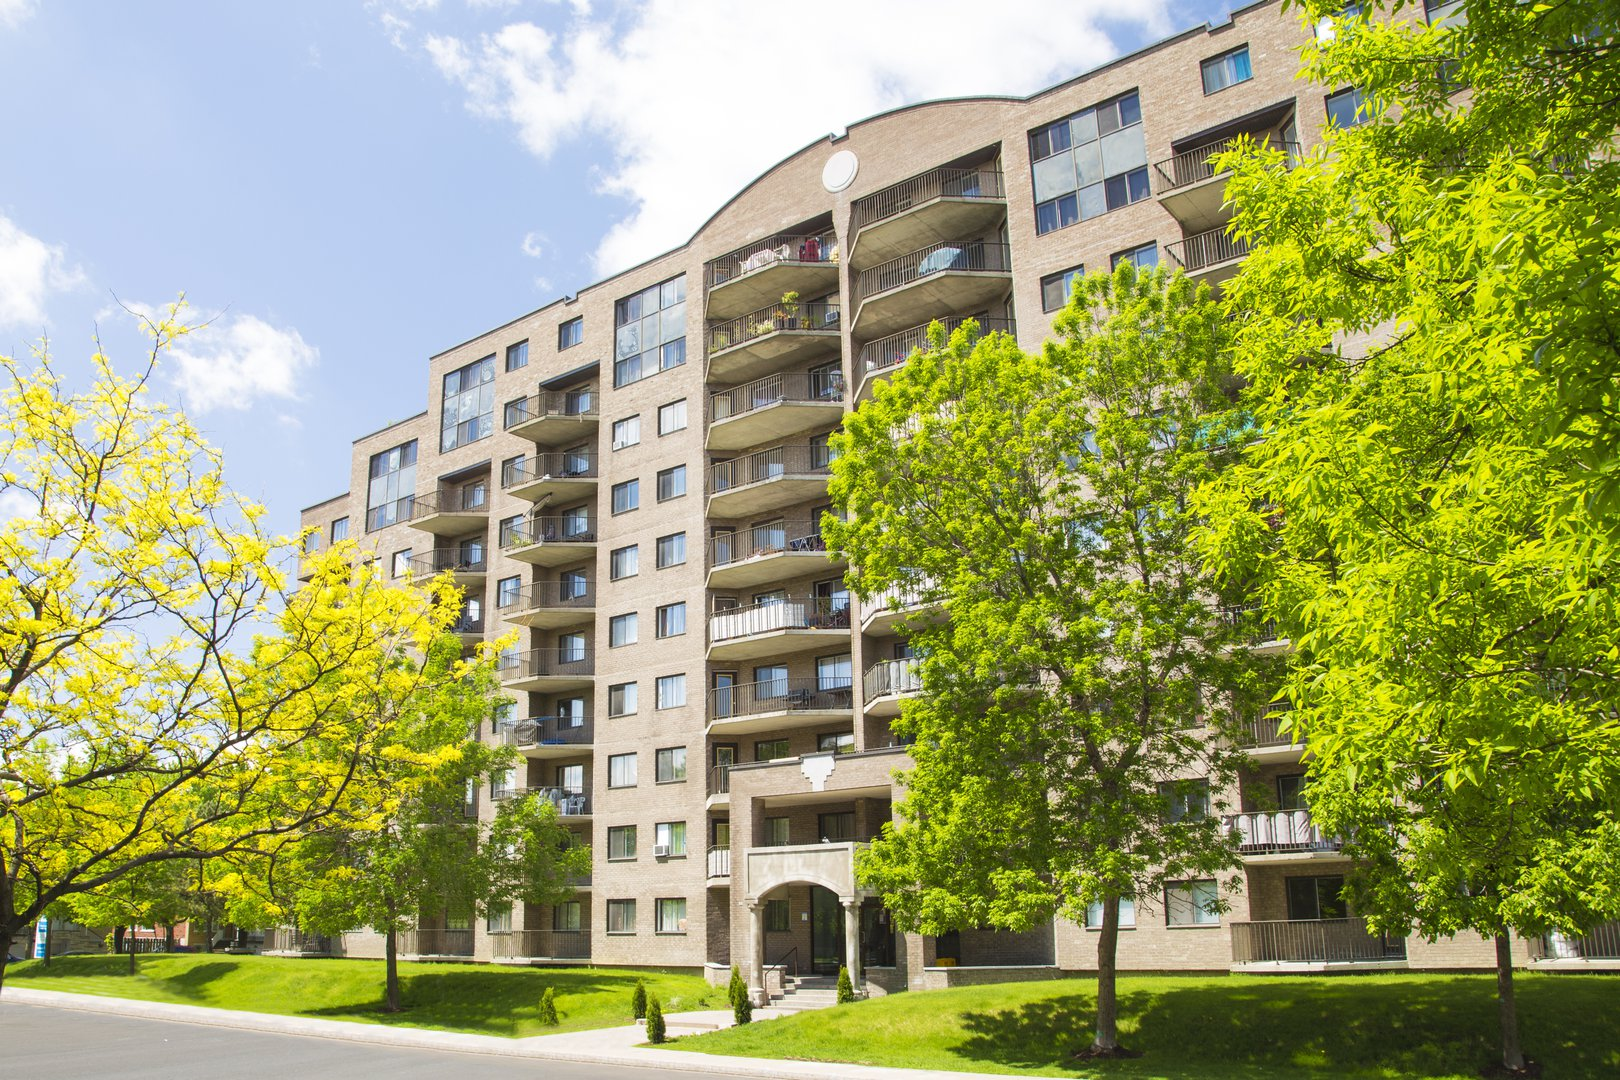 High-Rise Apartment for rent at 50 Quintin, suite 111, Ville Saint-Laurent, QC. This is the outdoor building with lawn.